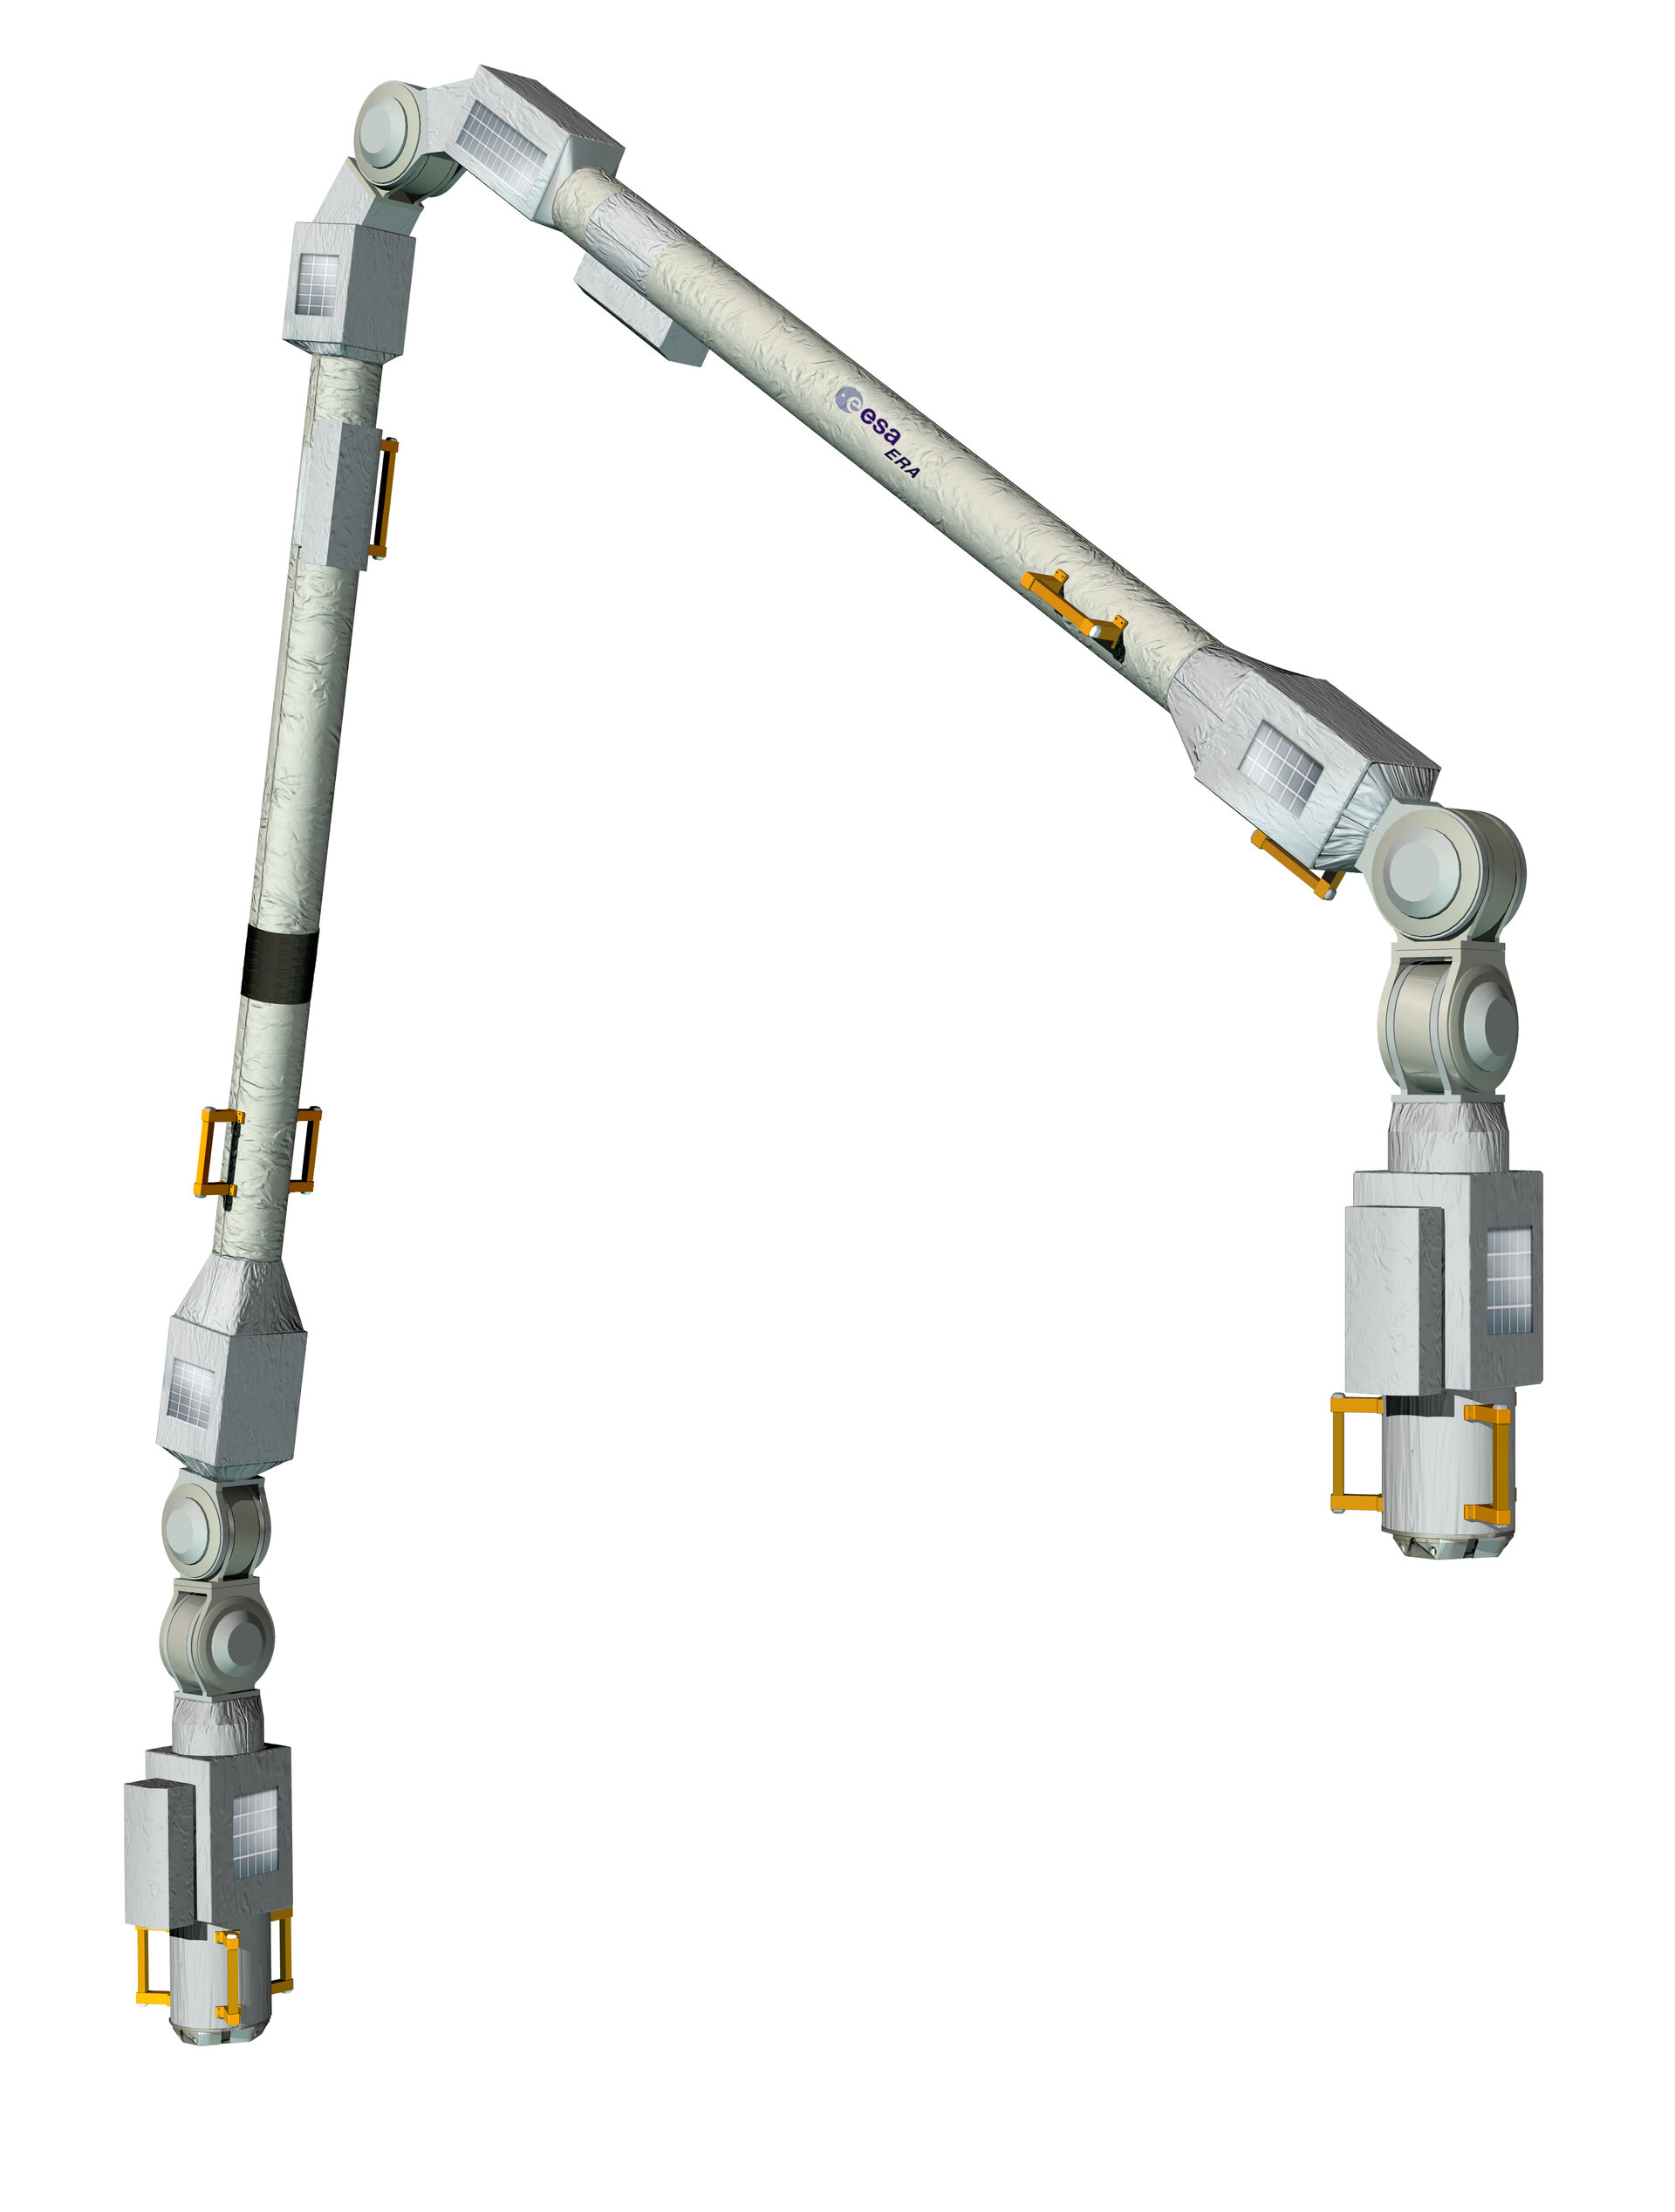 Artist's impression of European Robotic Arm (ERA)